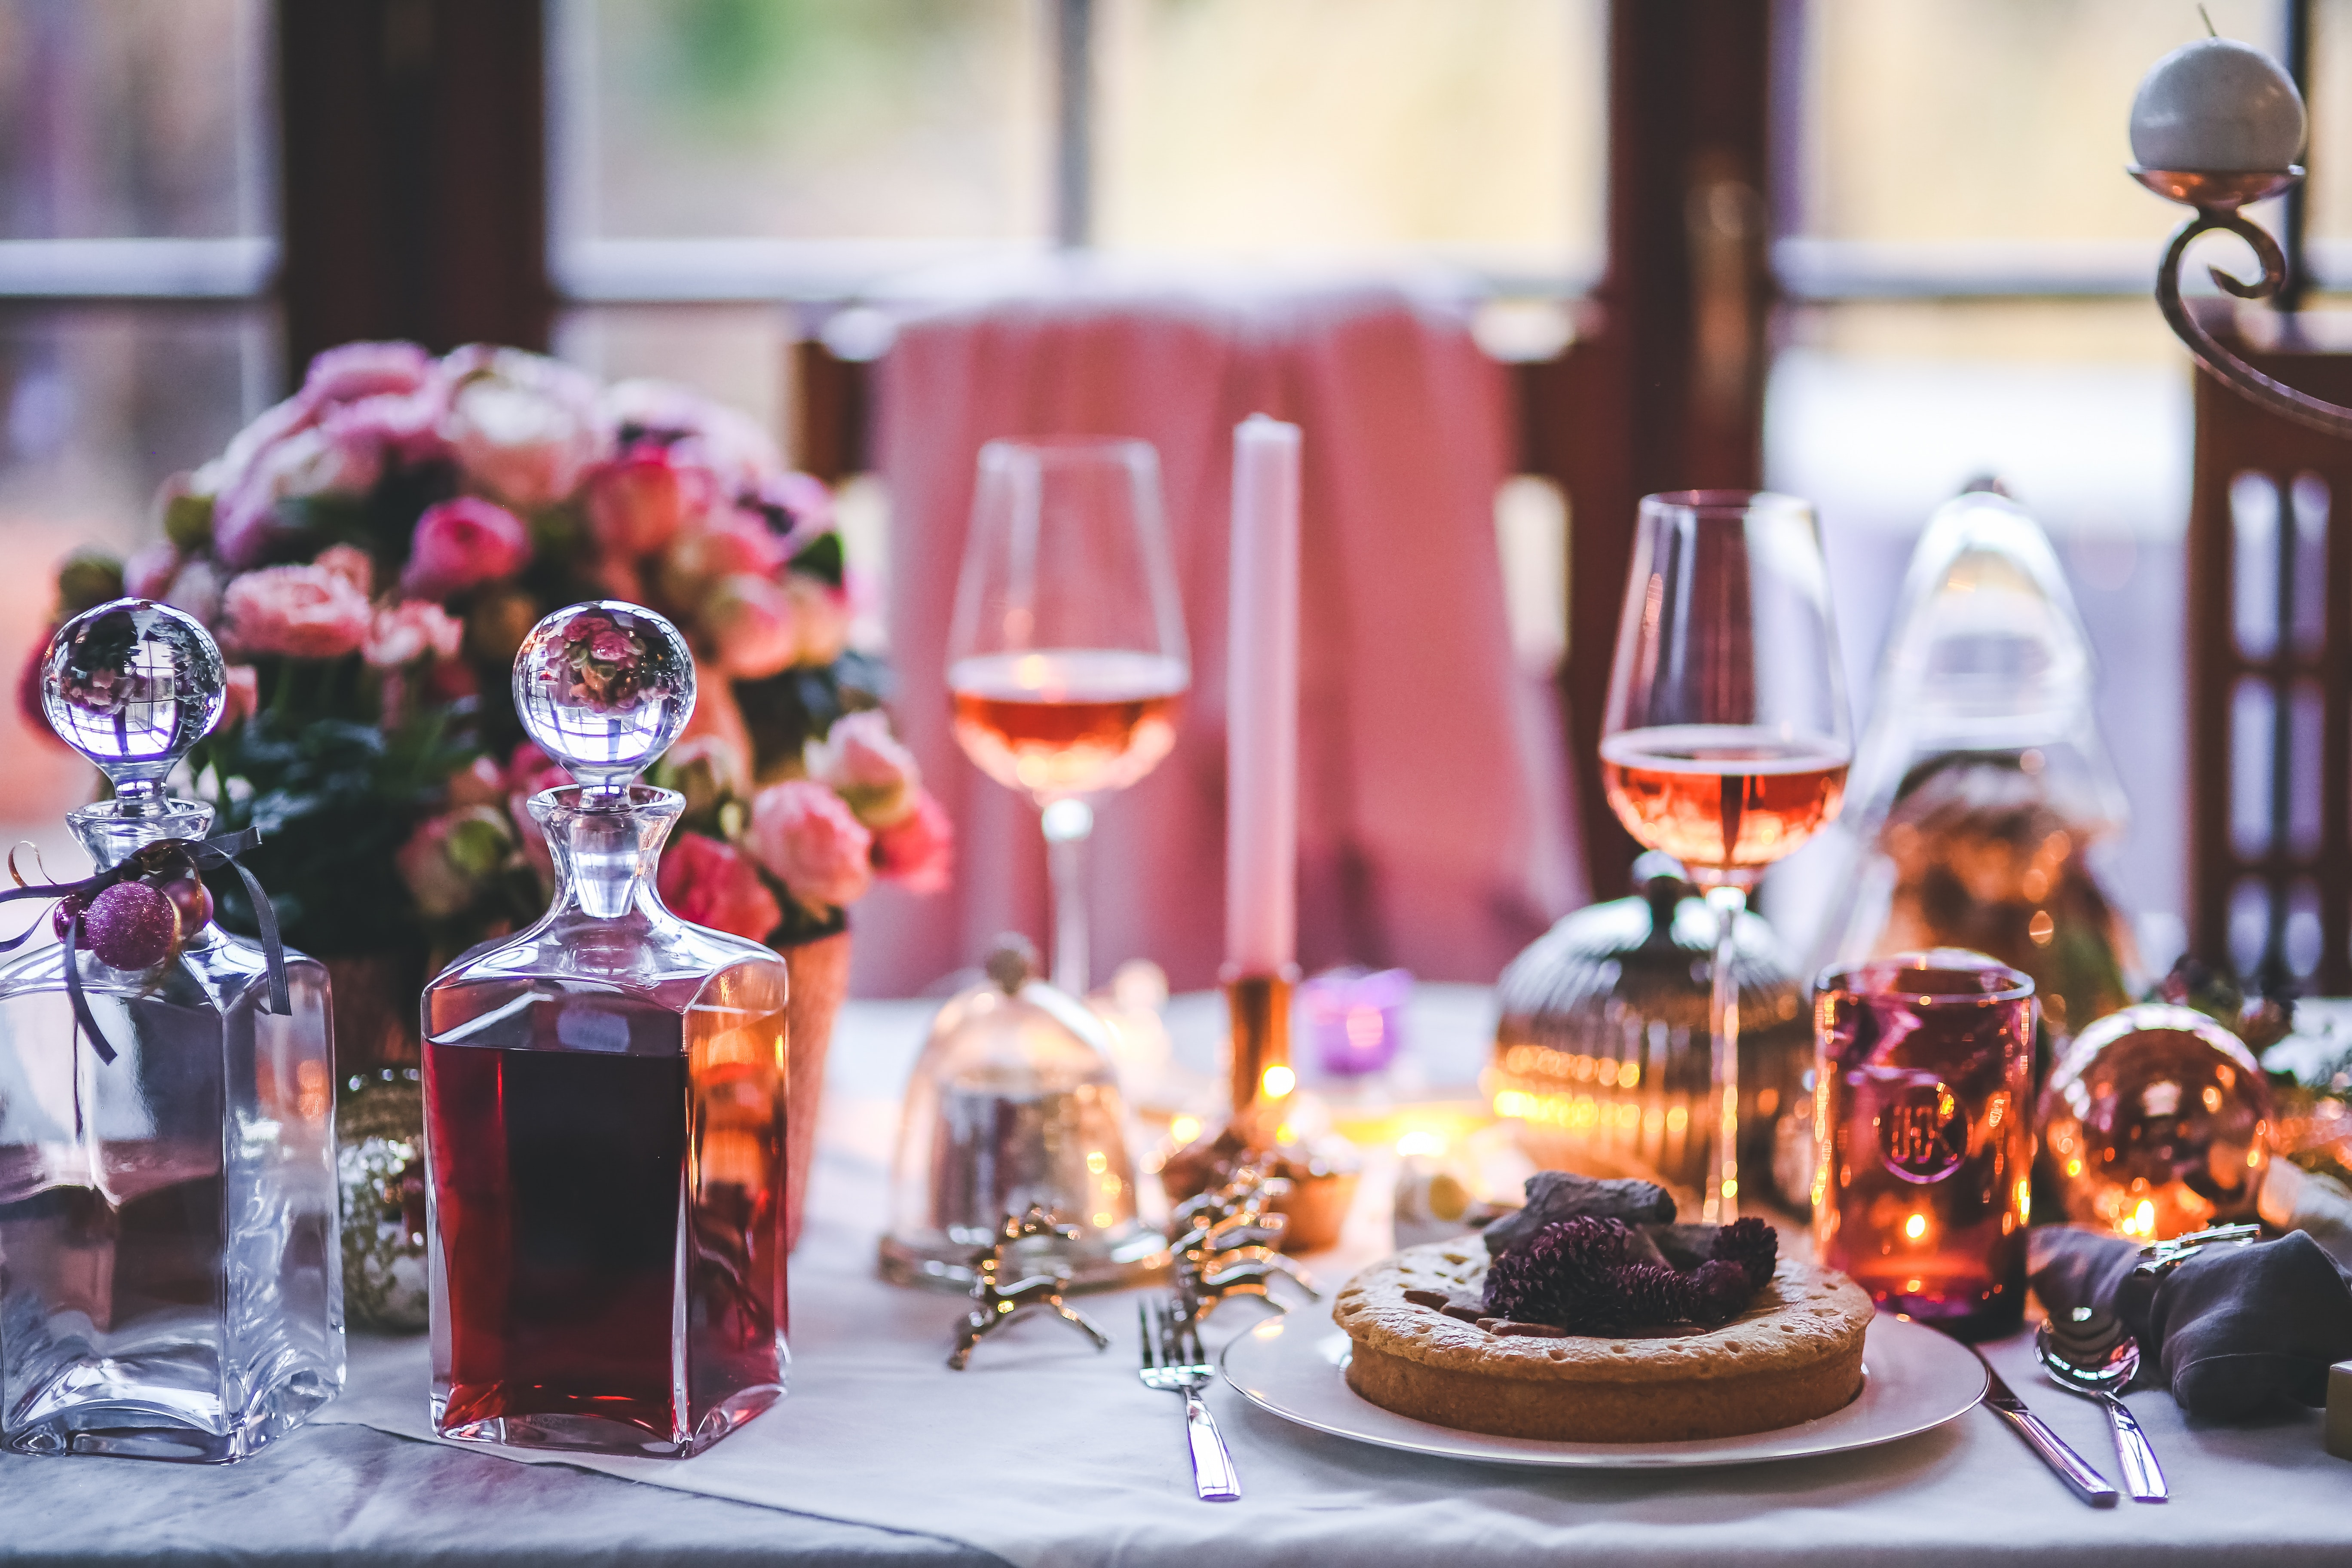 beautifully-served-table-for-dinner-6269